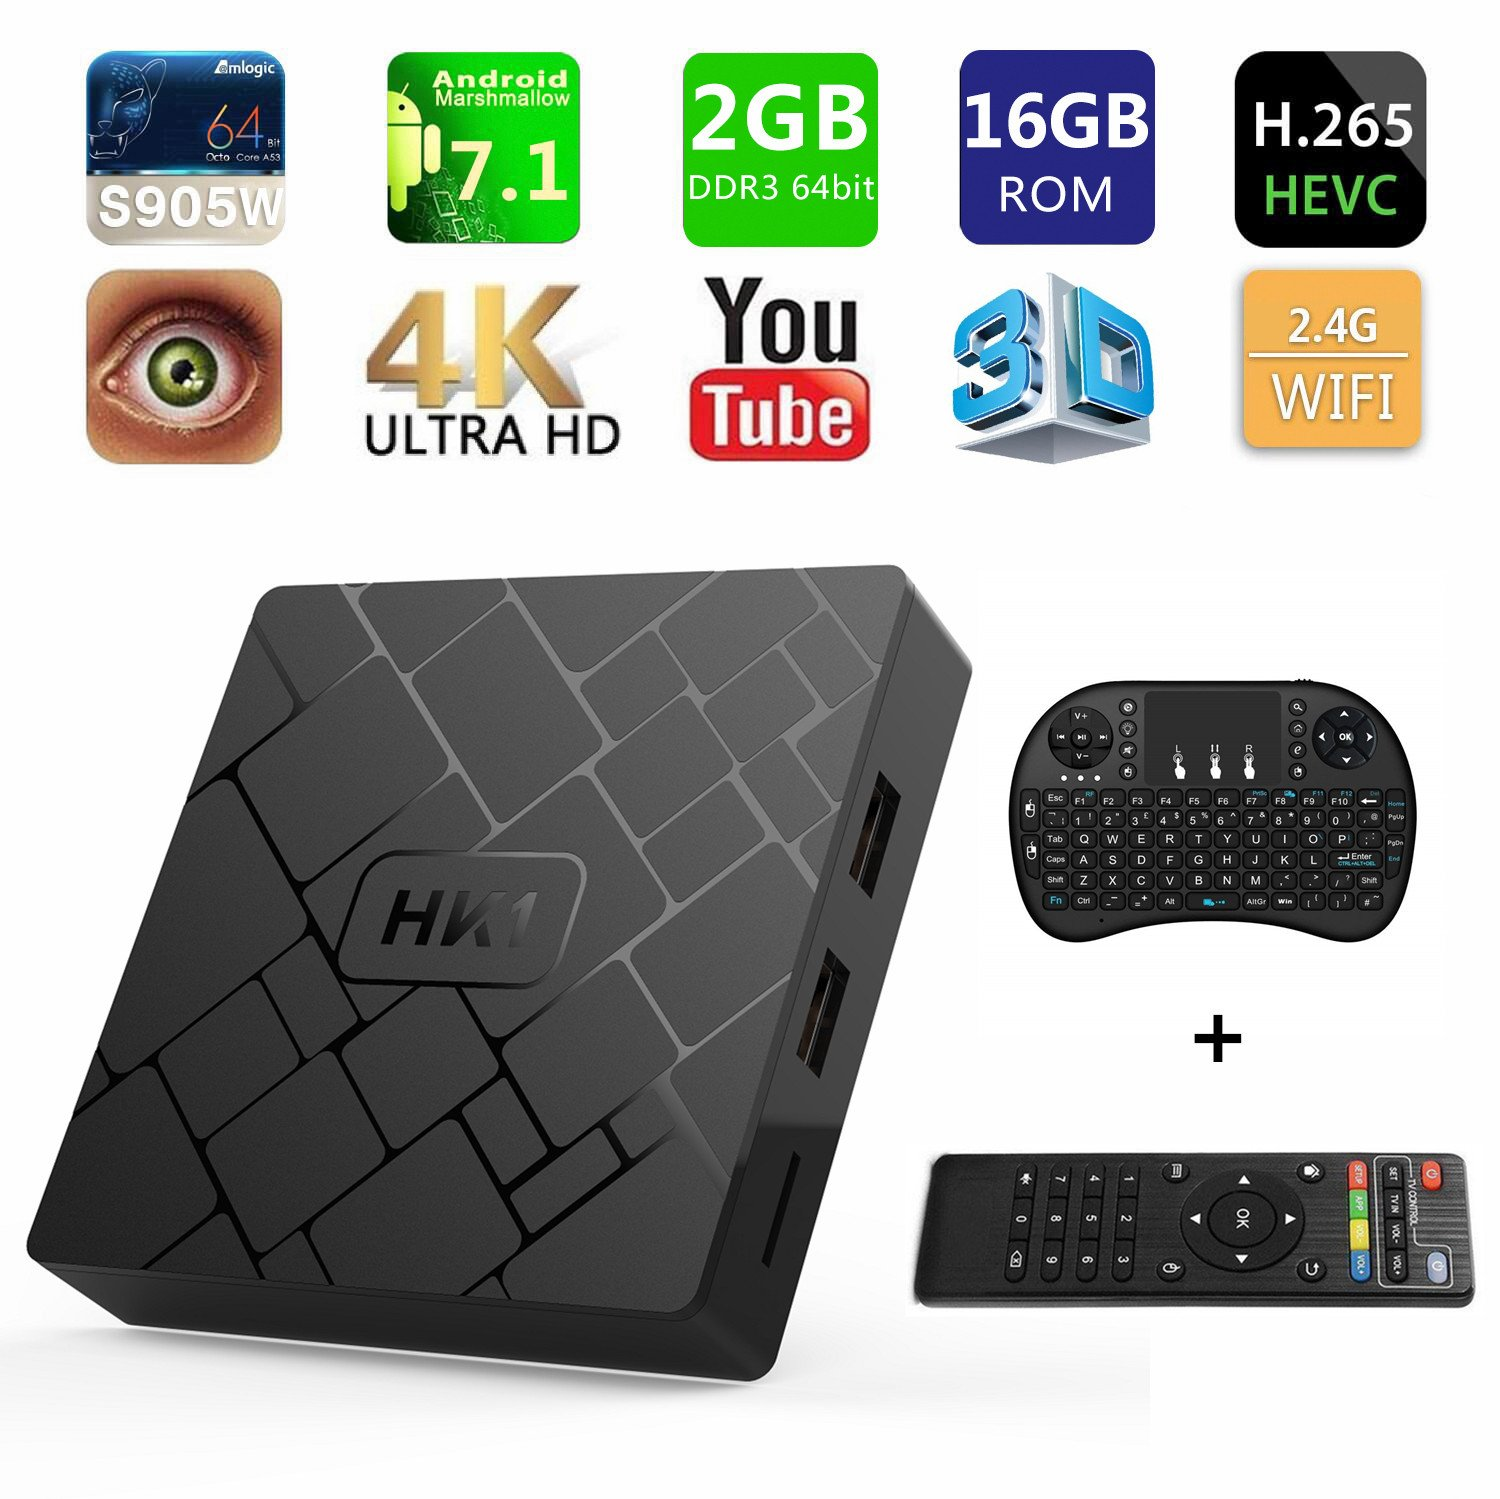 [Free Wireless Keyboard] 2018 J-Deal 4K 7.1 Android TV Box, 2GB RAM 16GB ROM, Amlogic Quad Core A53 Processor 64 Bits, 2.4GHz WiFi Smart TV Box, HDMI 2.0 Output Support H.265 4K2K@ 60HZ Ultra HD